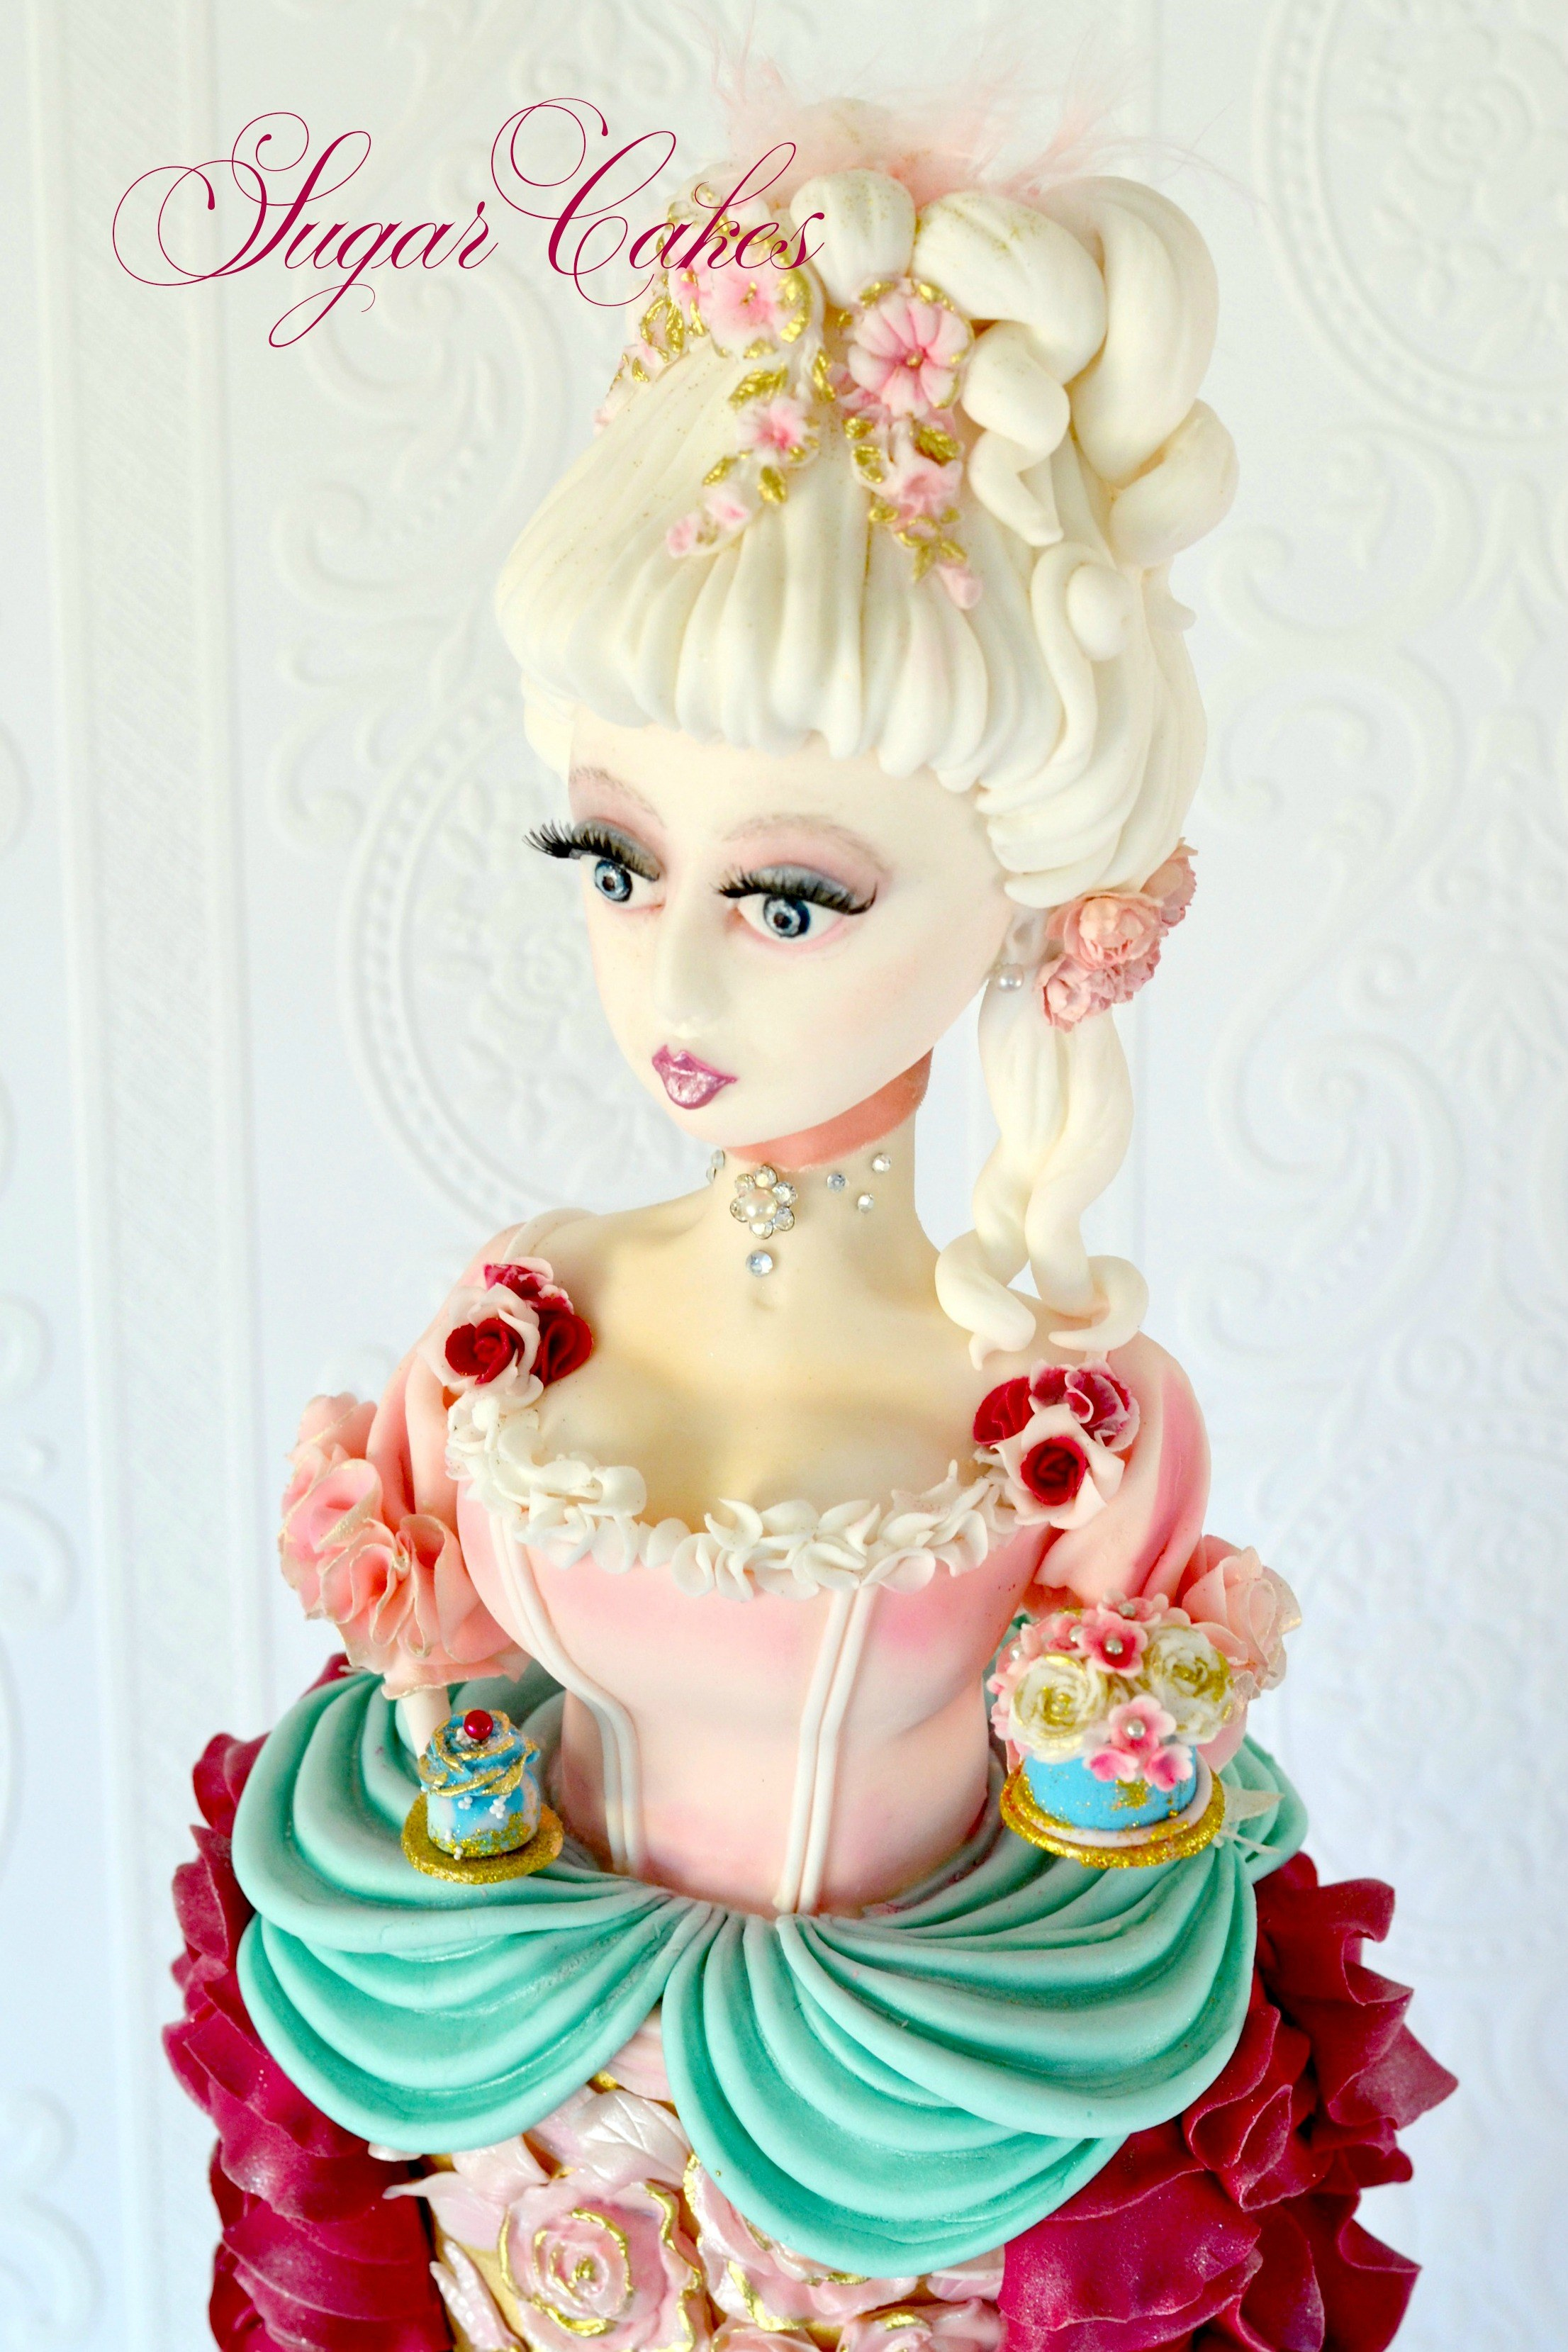 Sculpted Marie Antoinette sugar figurine